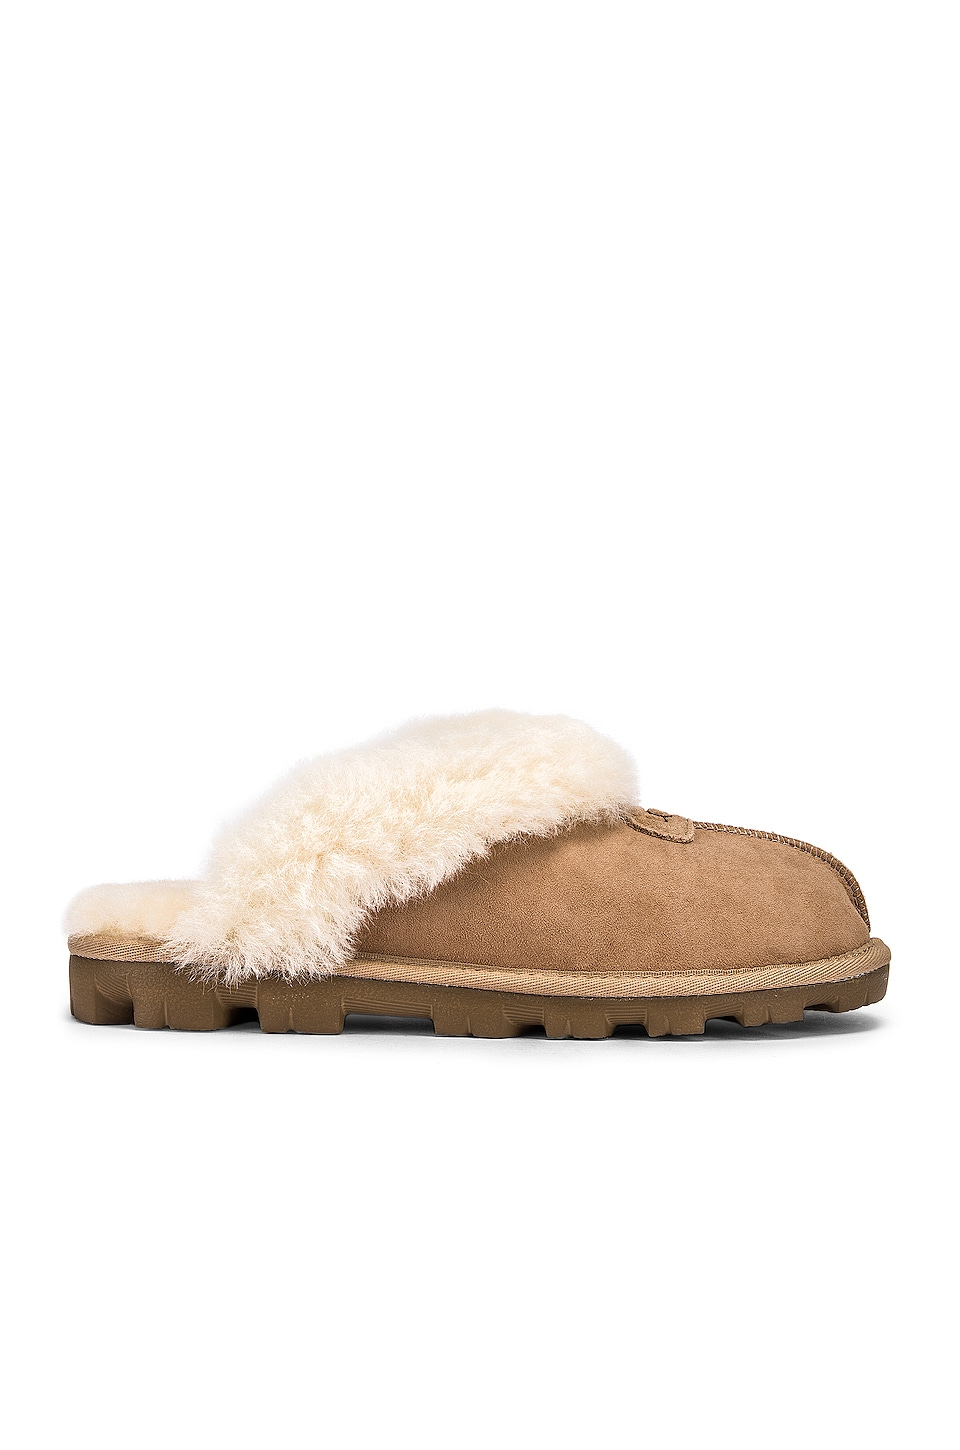 UGG Coquette Slipper in Sand